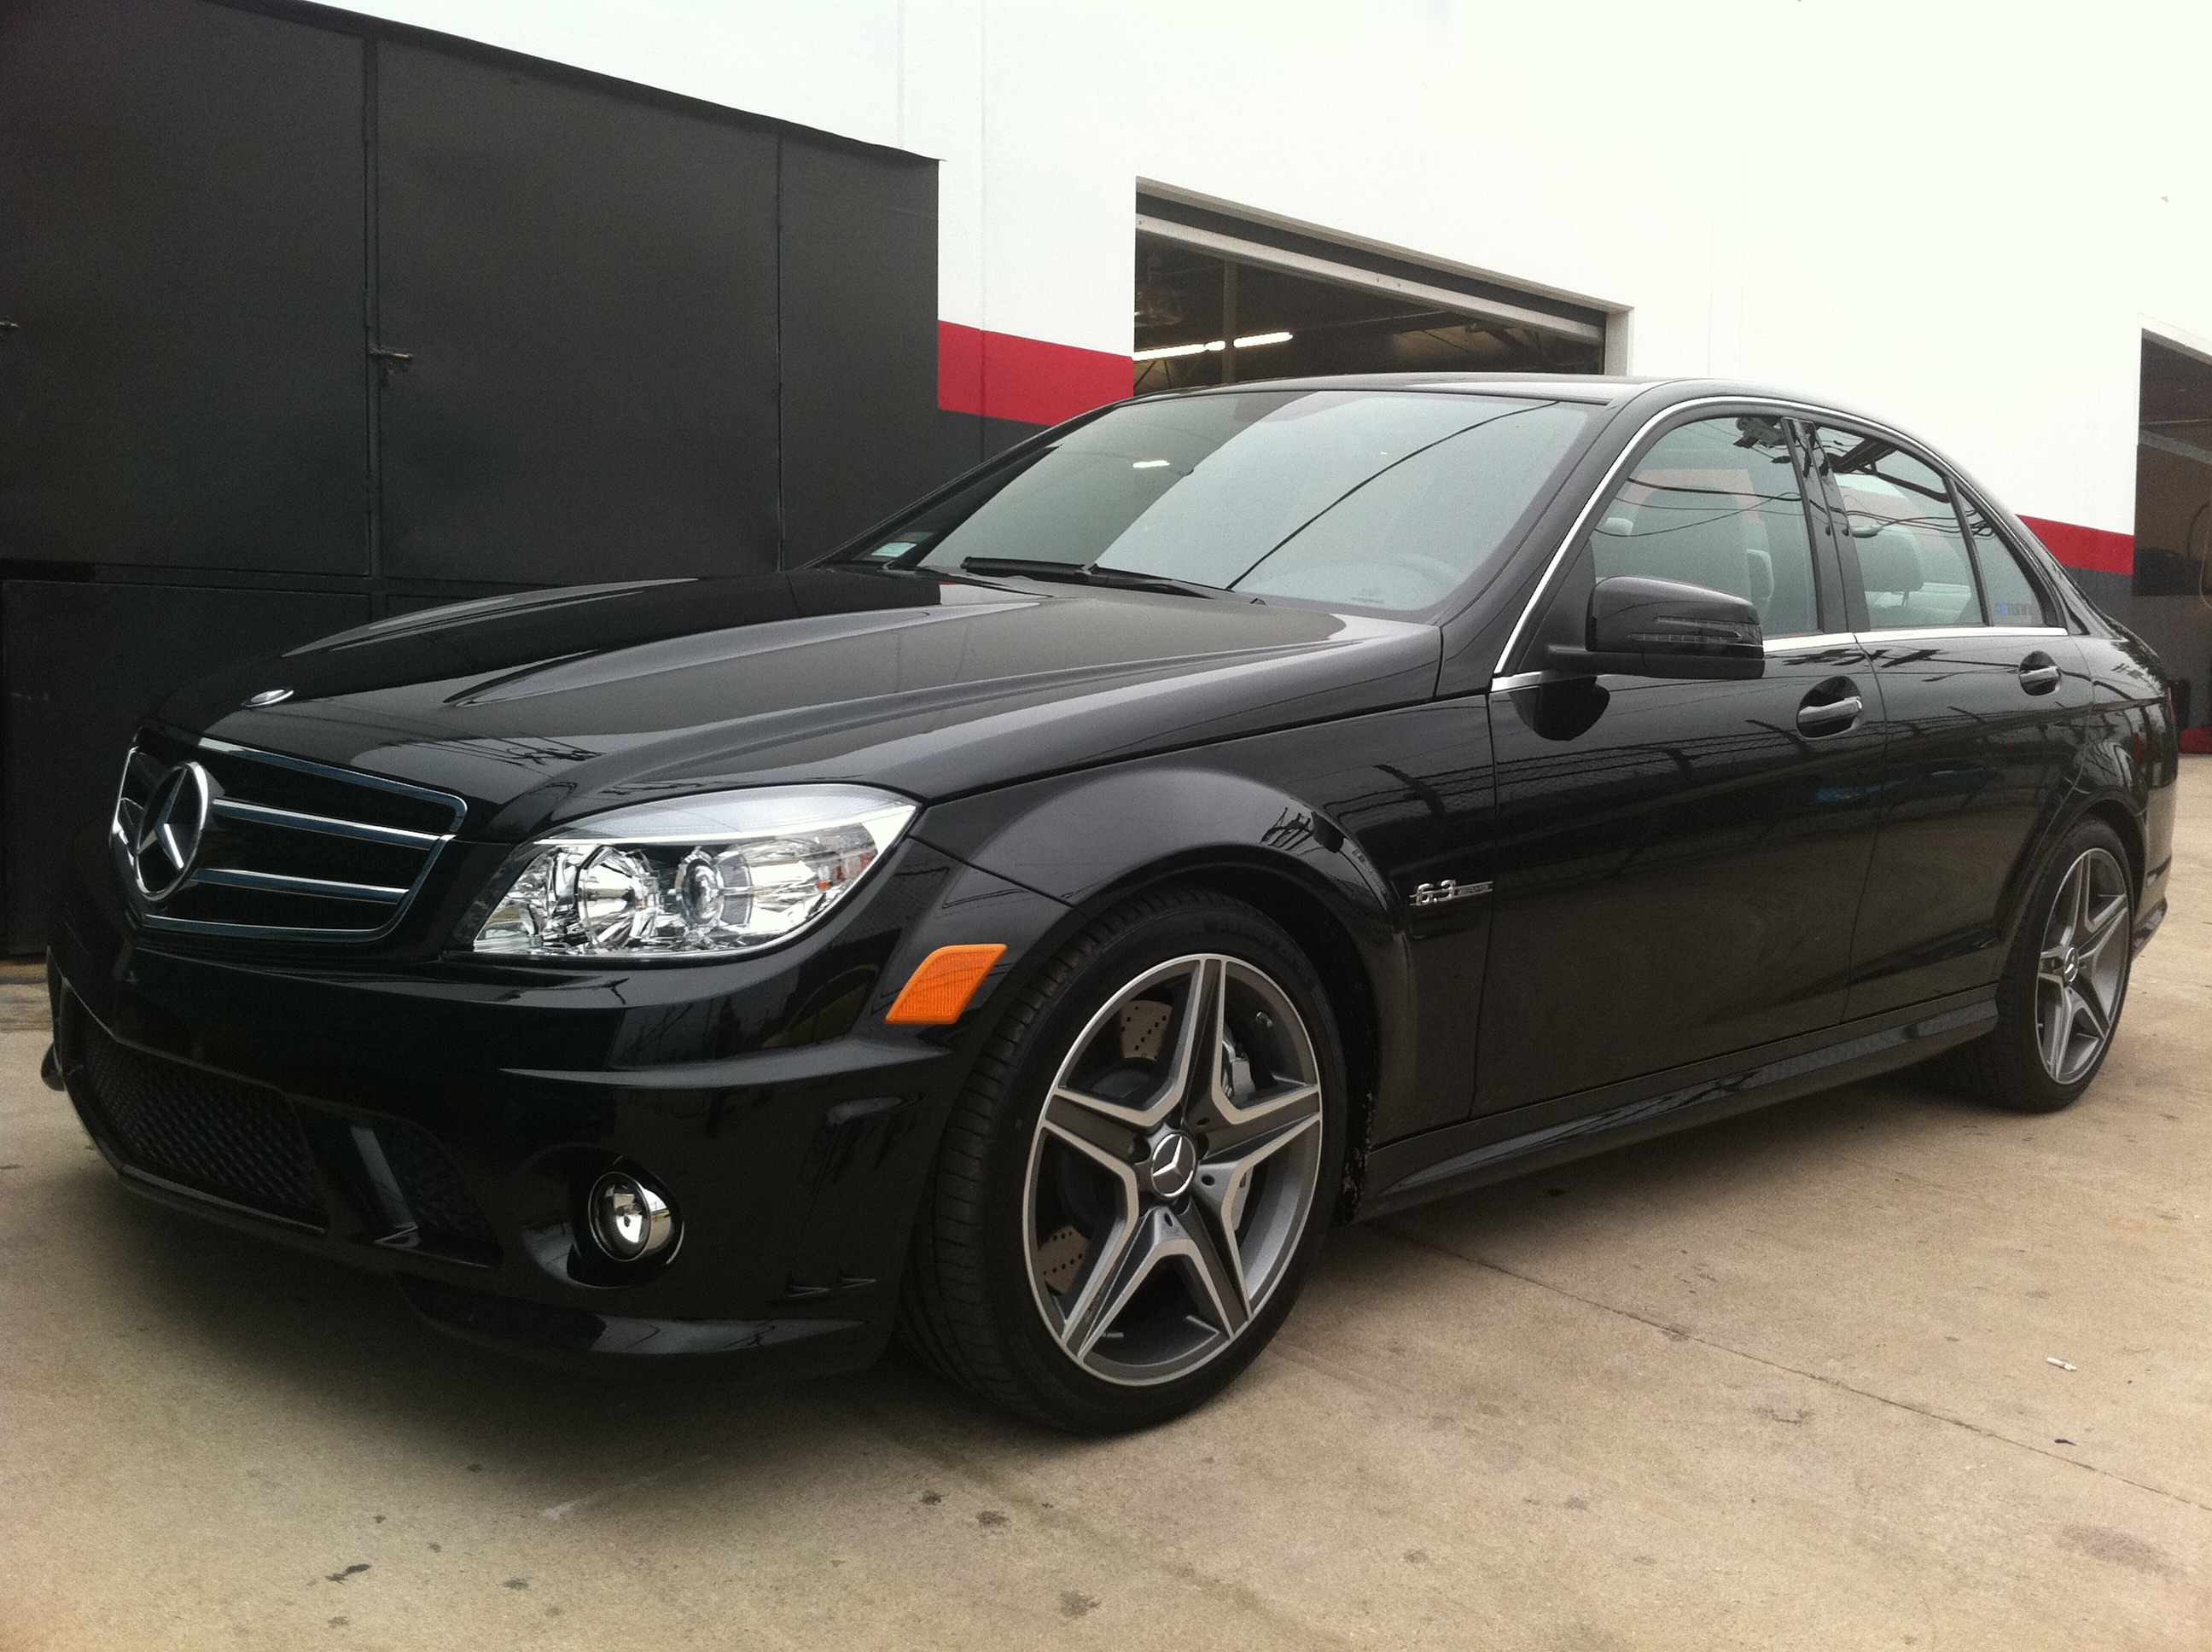 C63 amg oe tuning blog for Mercedes benz c63 amg 2010